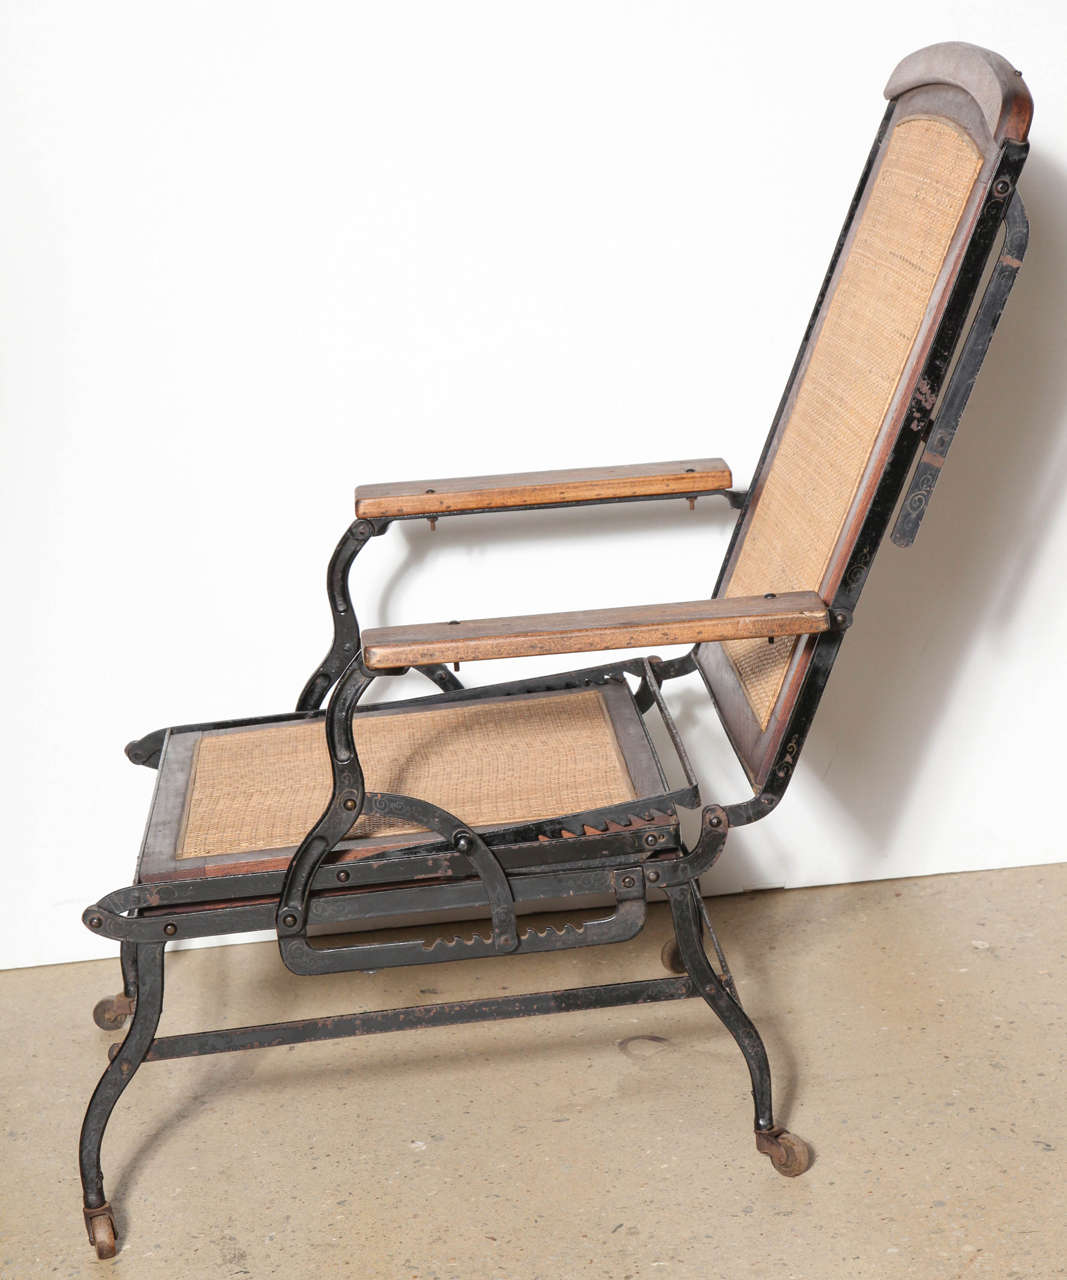 Cevedra Sheldon Walnut, Cane & Cast Iron Rolling Chaise Lounge Chair, C. 1876 For Sale 2